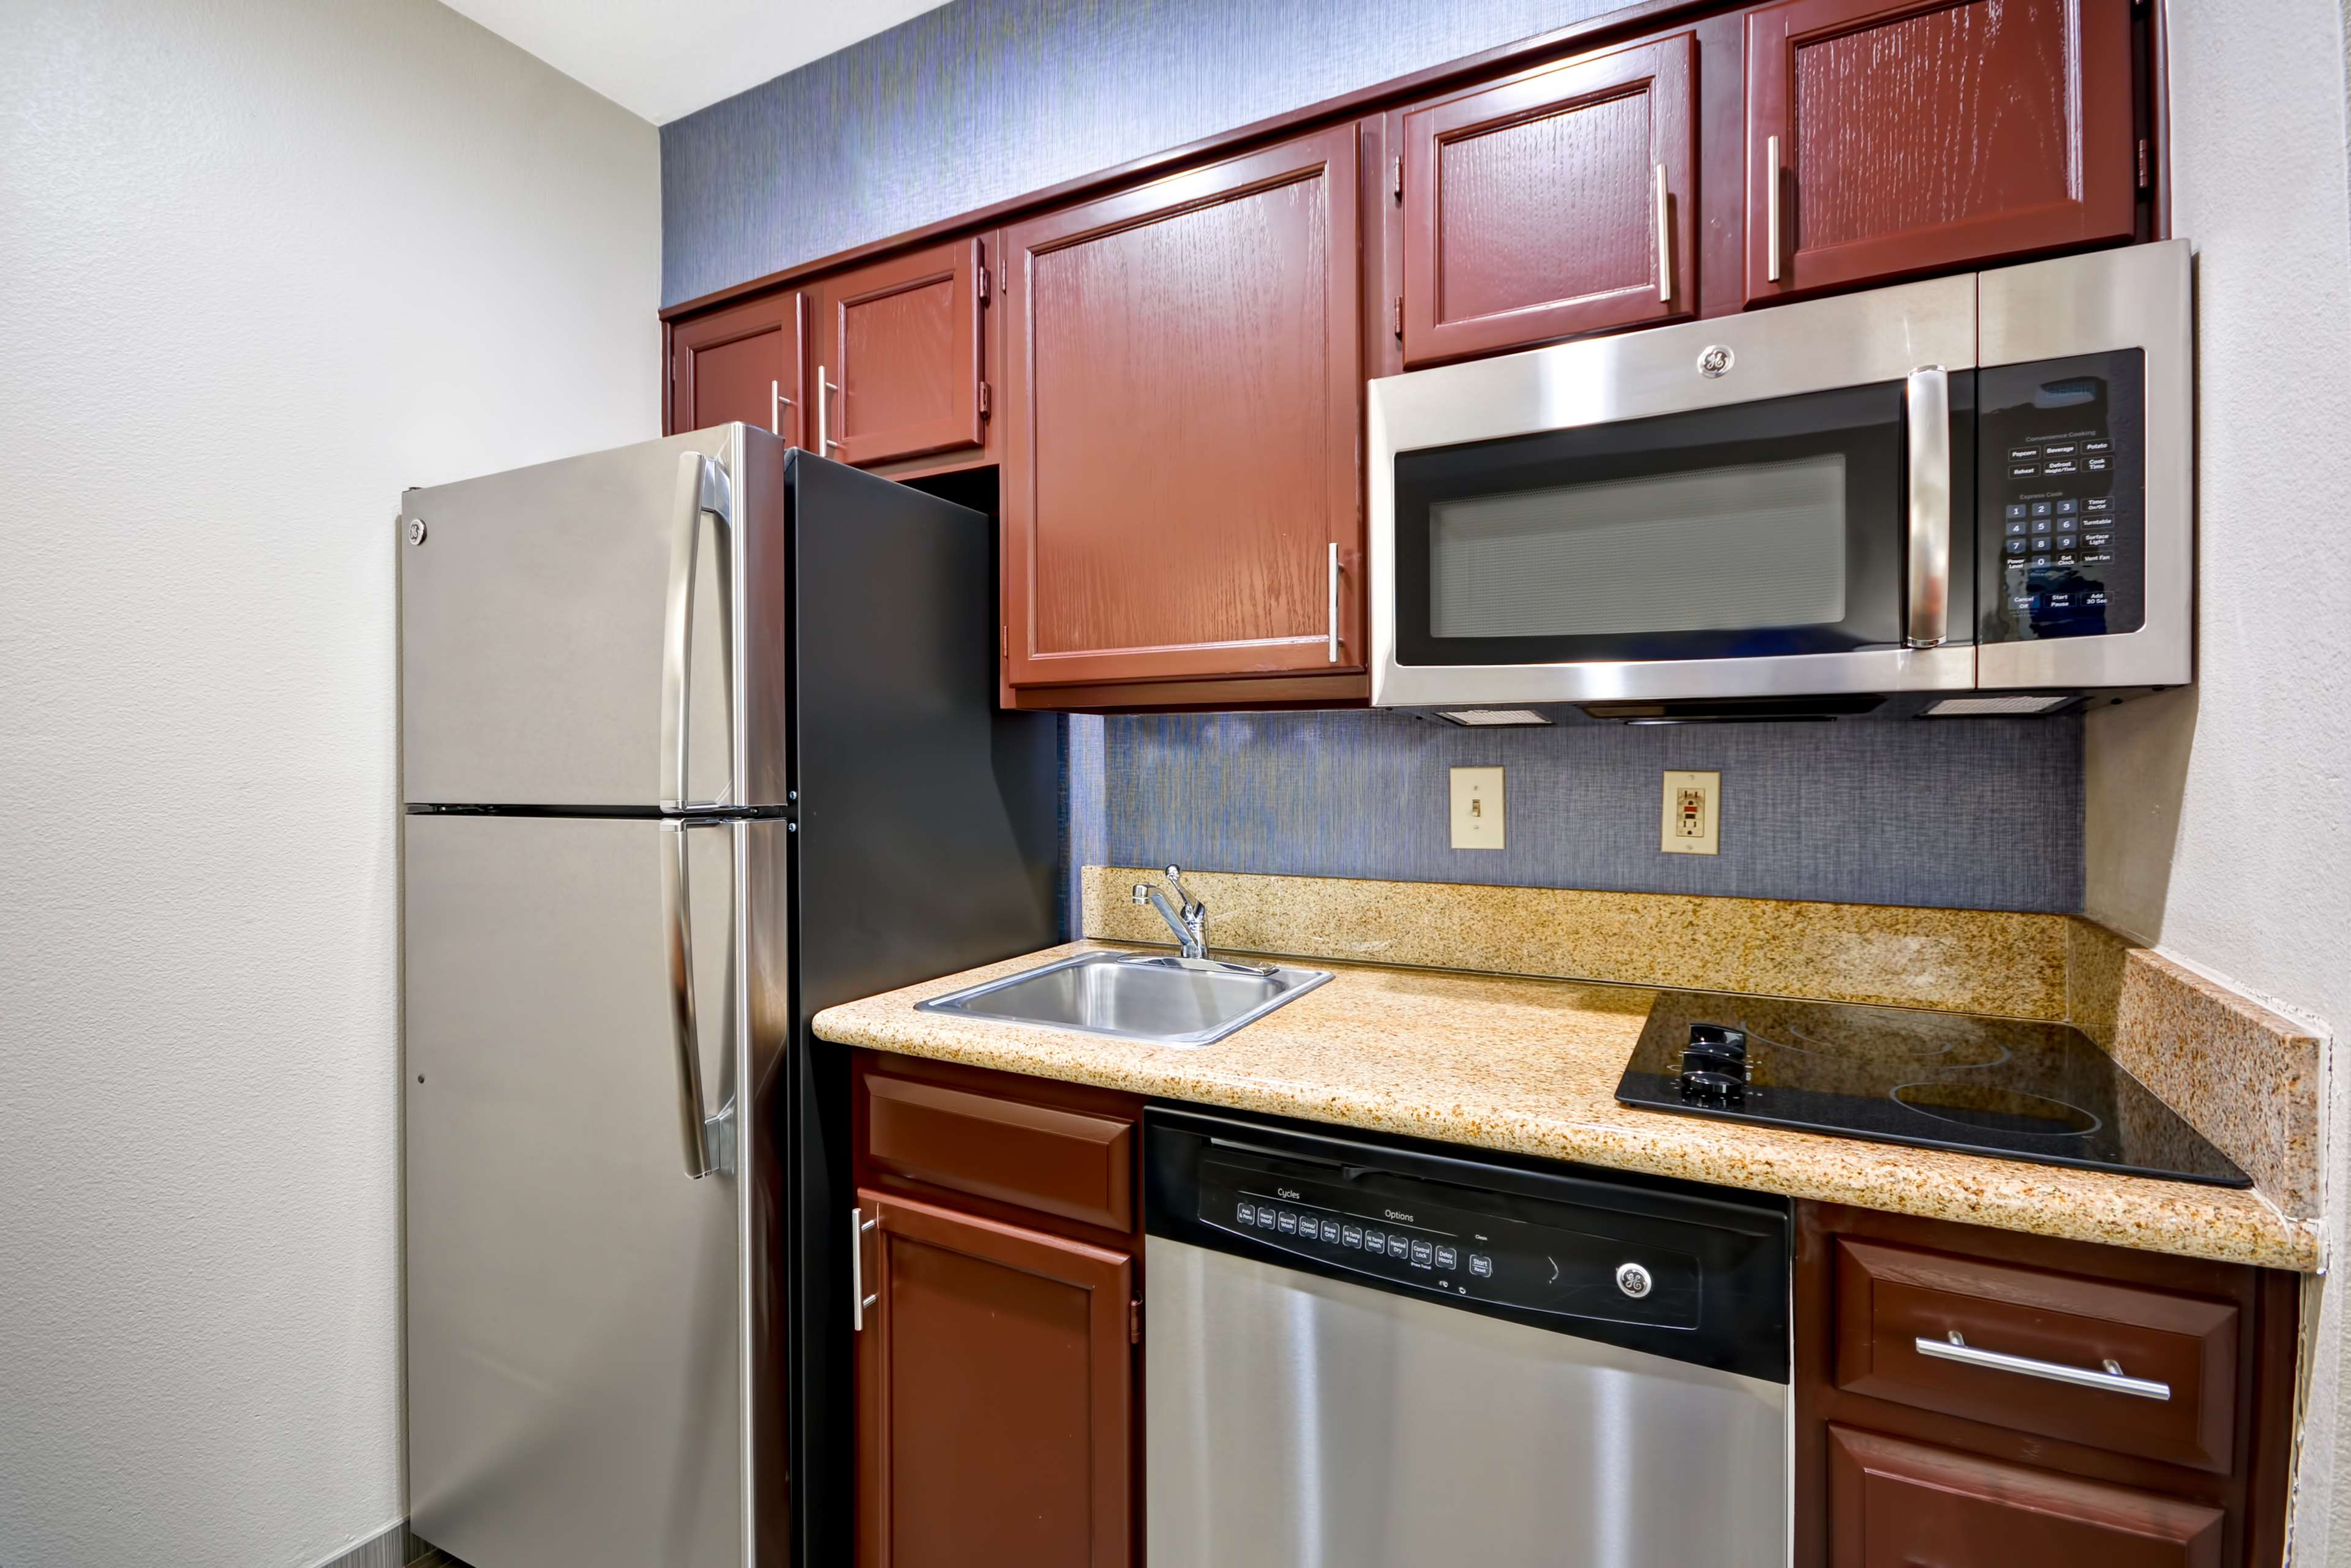 Homewood Suites by Hilton Dallas-Lewisville image 17